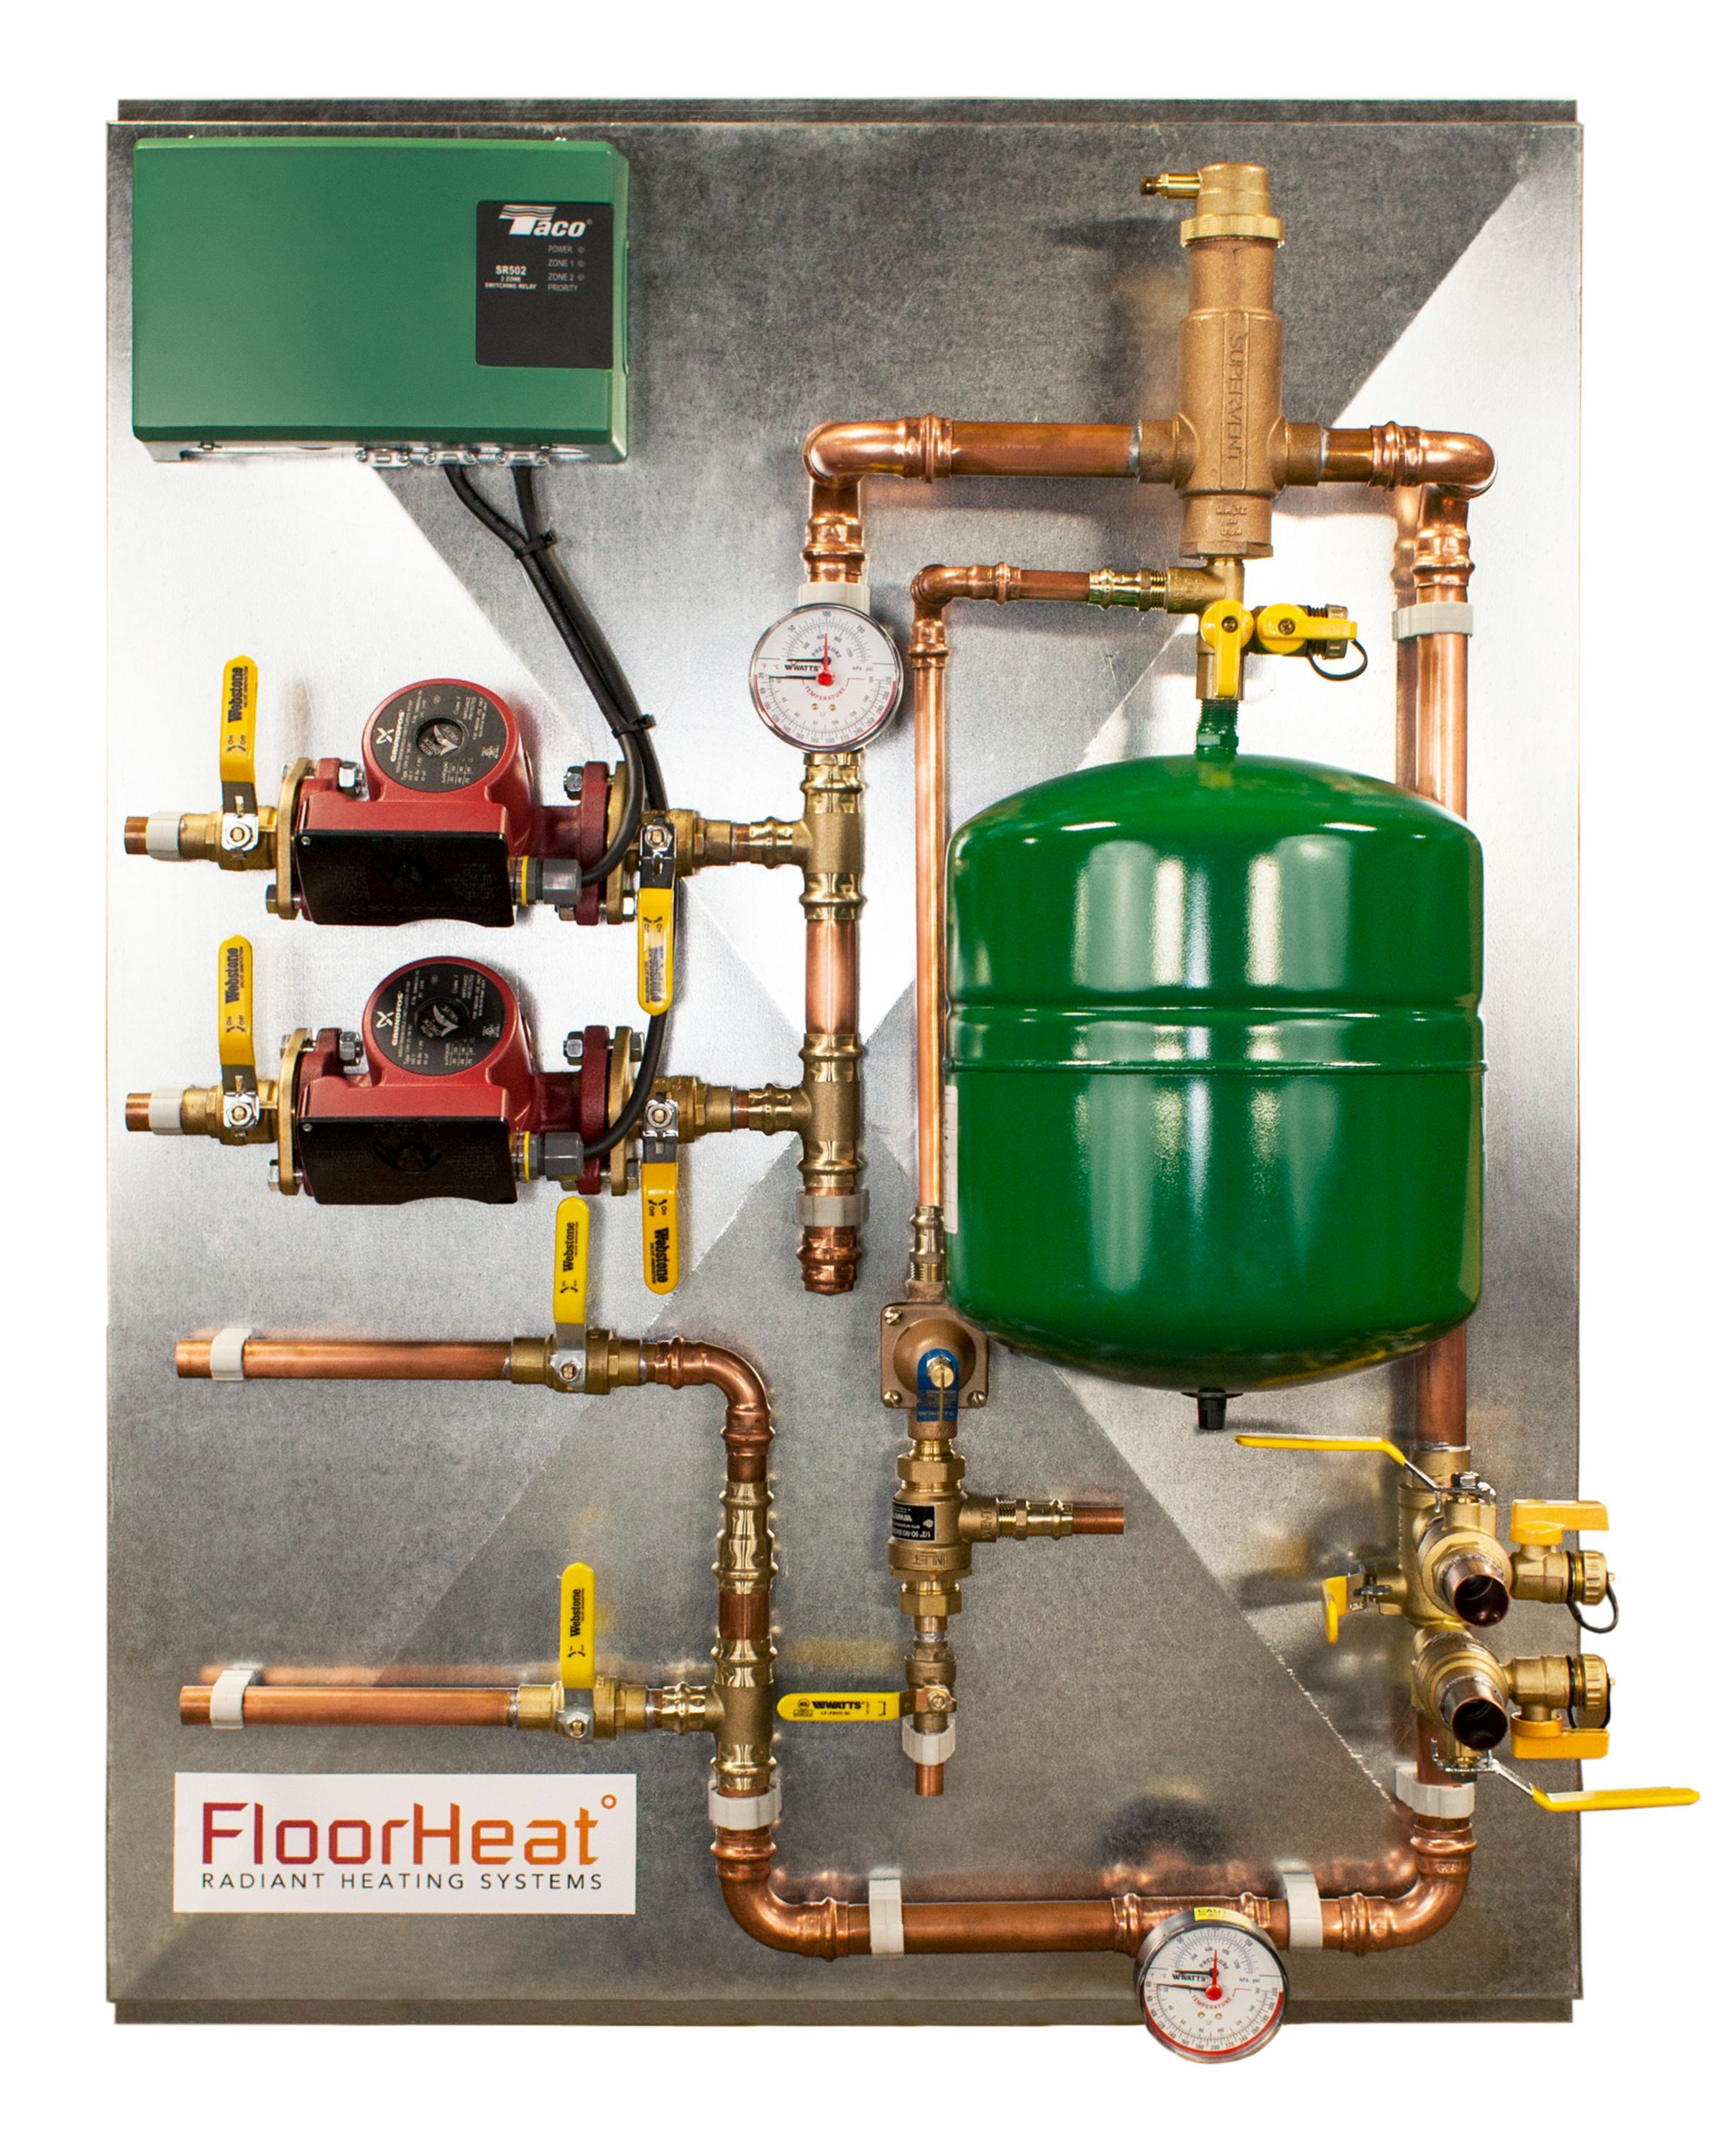 hight resolution of prefabricated distribution control panel helps to simplify your radiant heat installation our distribution panels for radiant heat have all the necessary